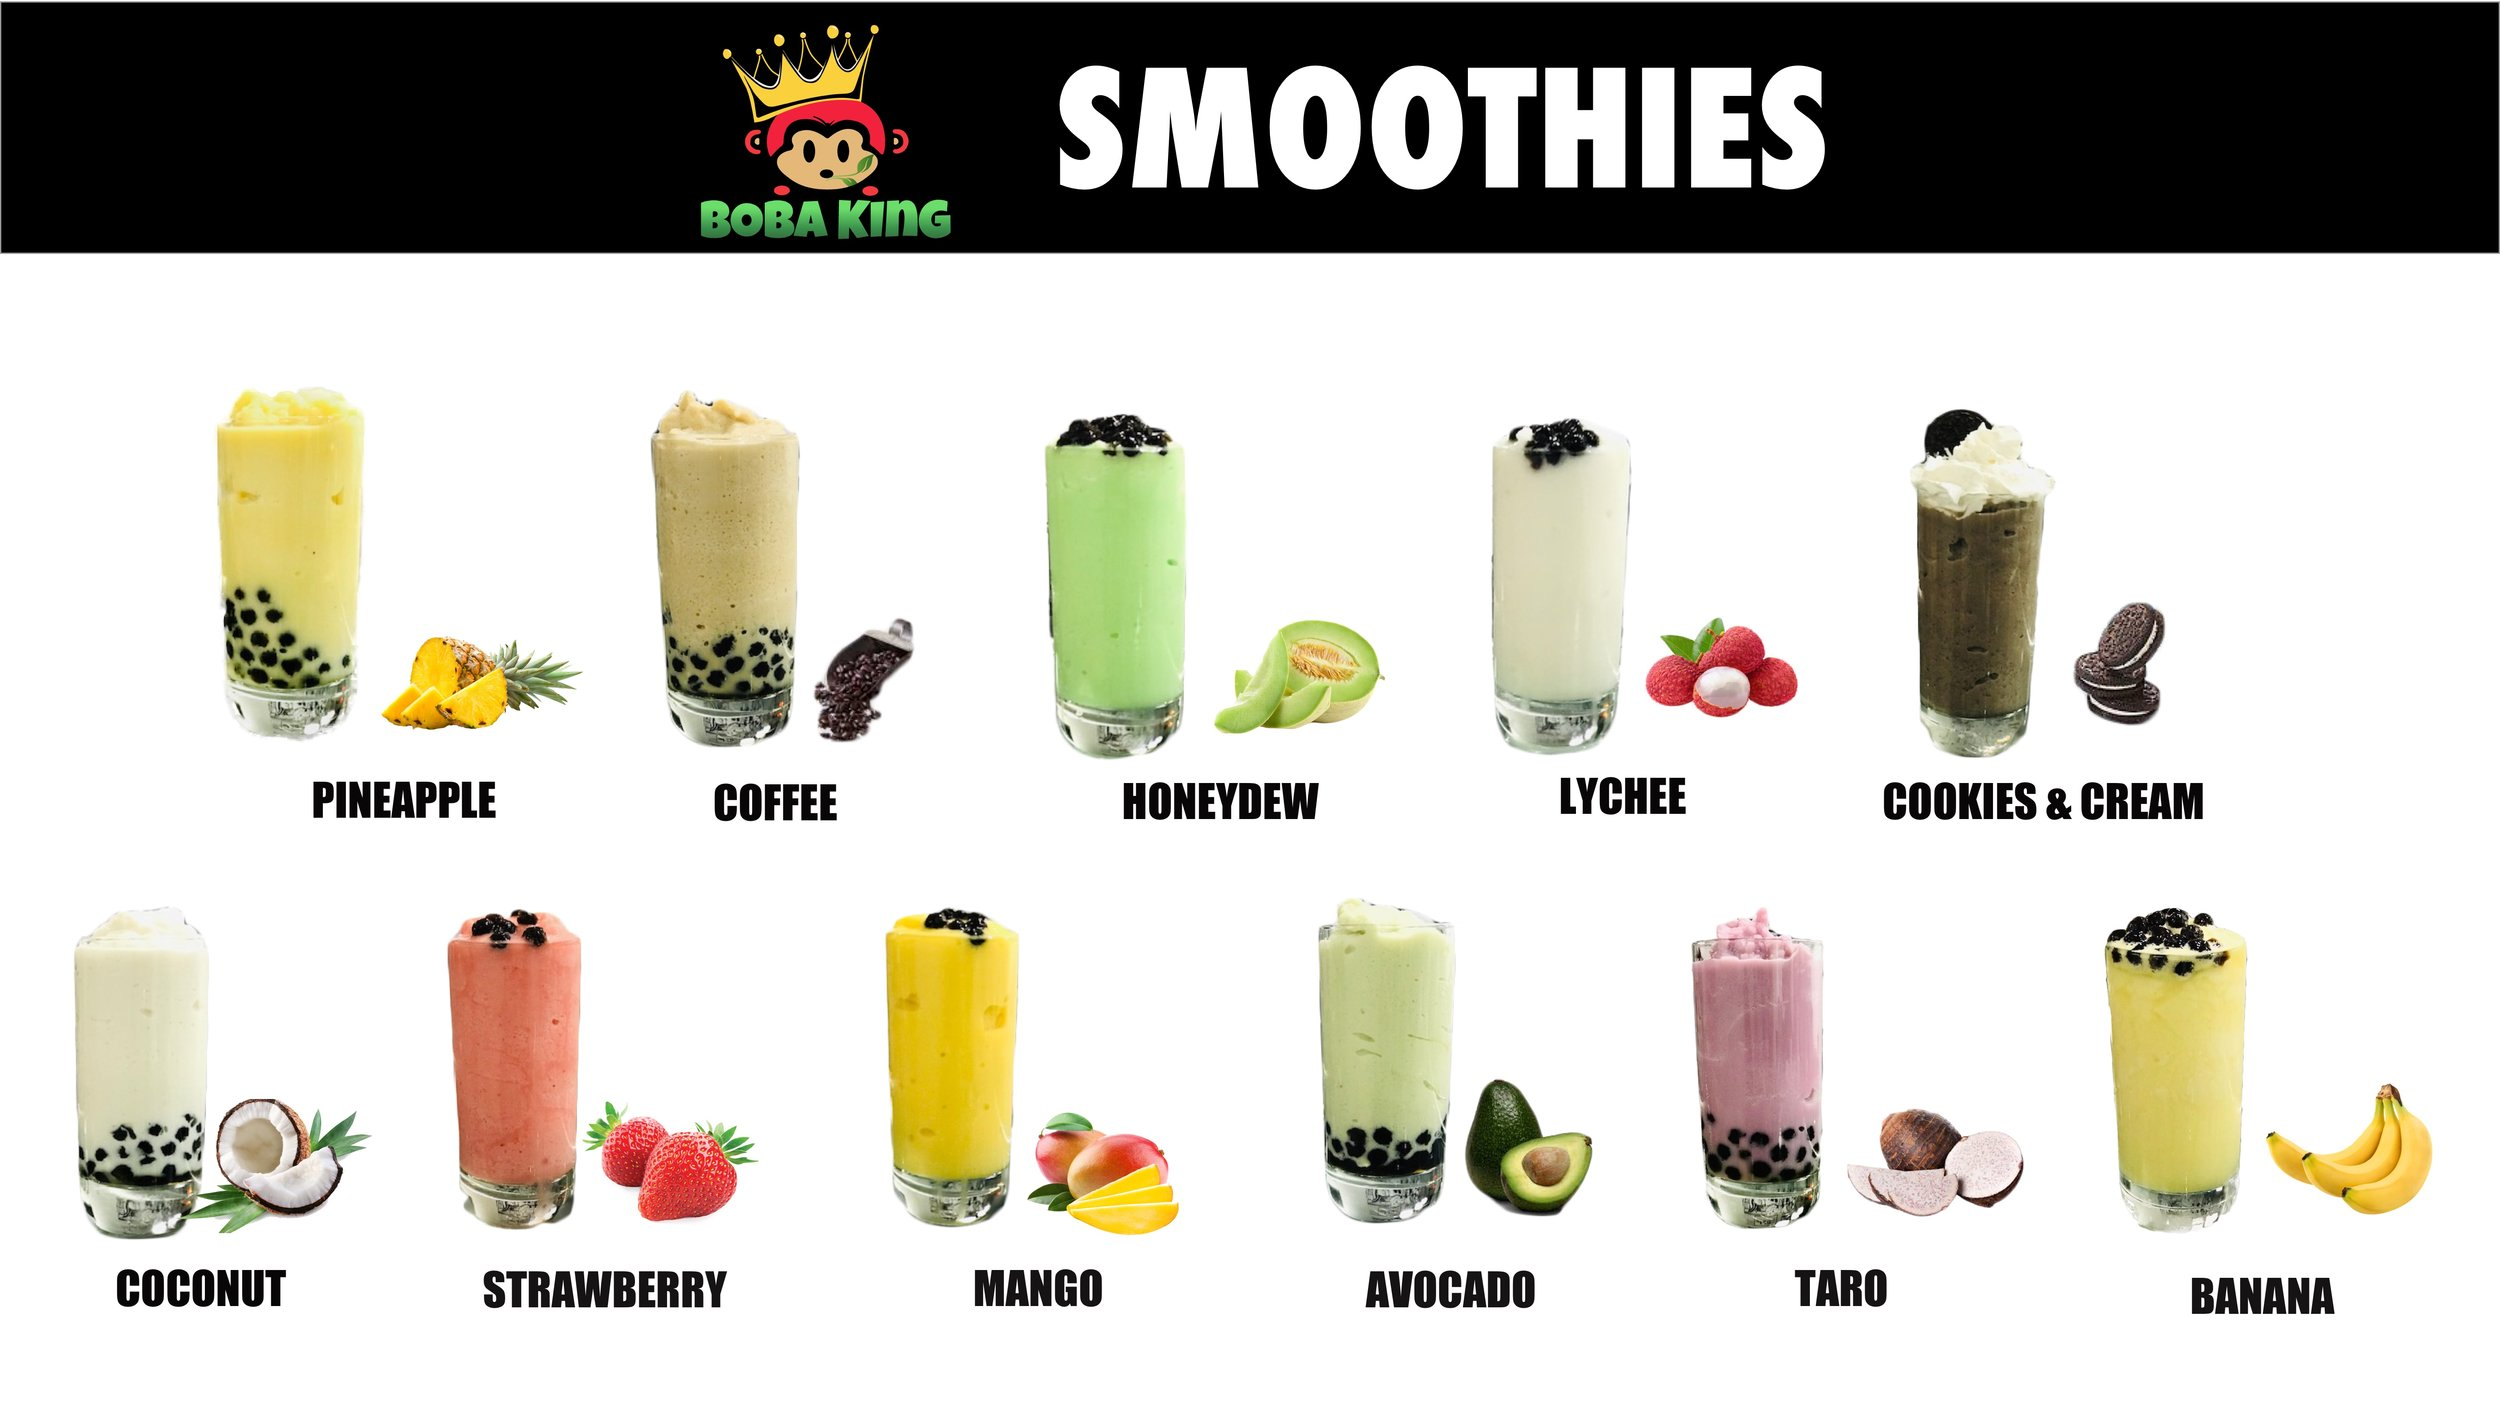 Smoothies.jpg